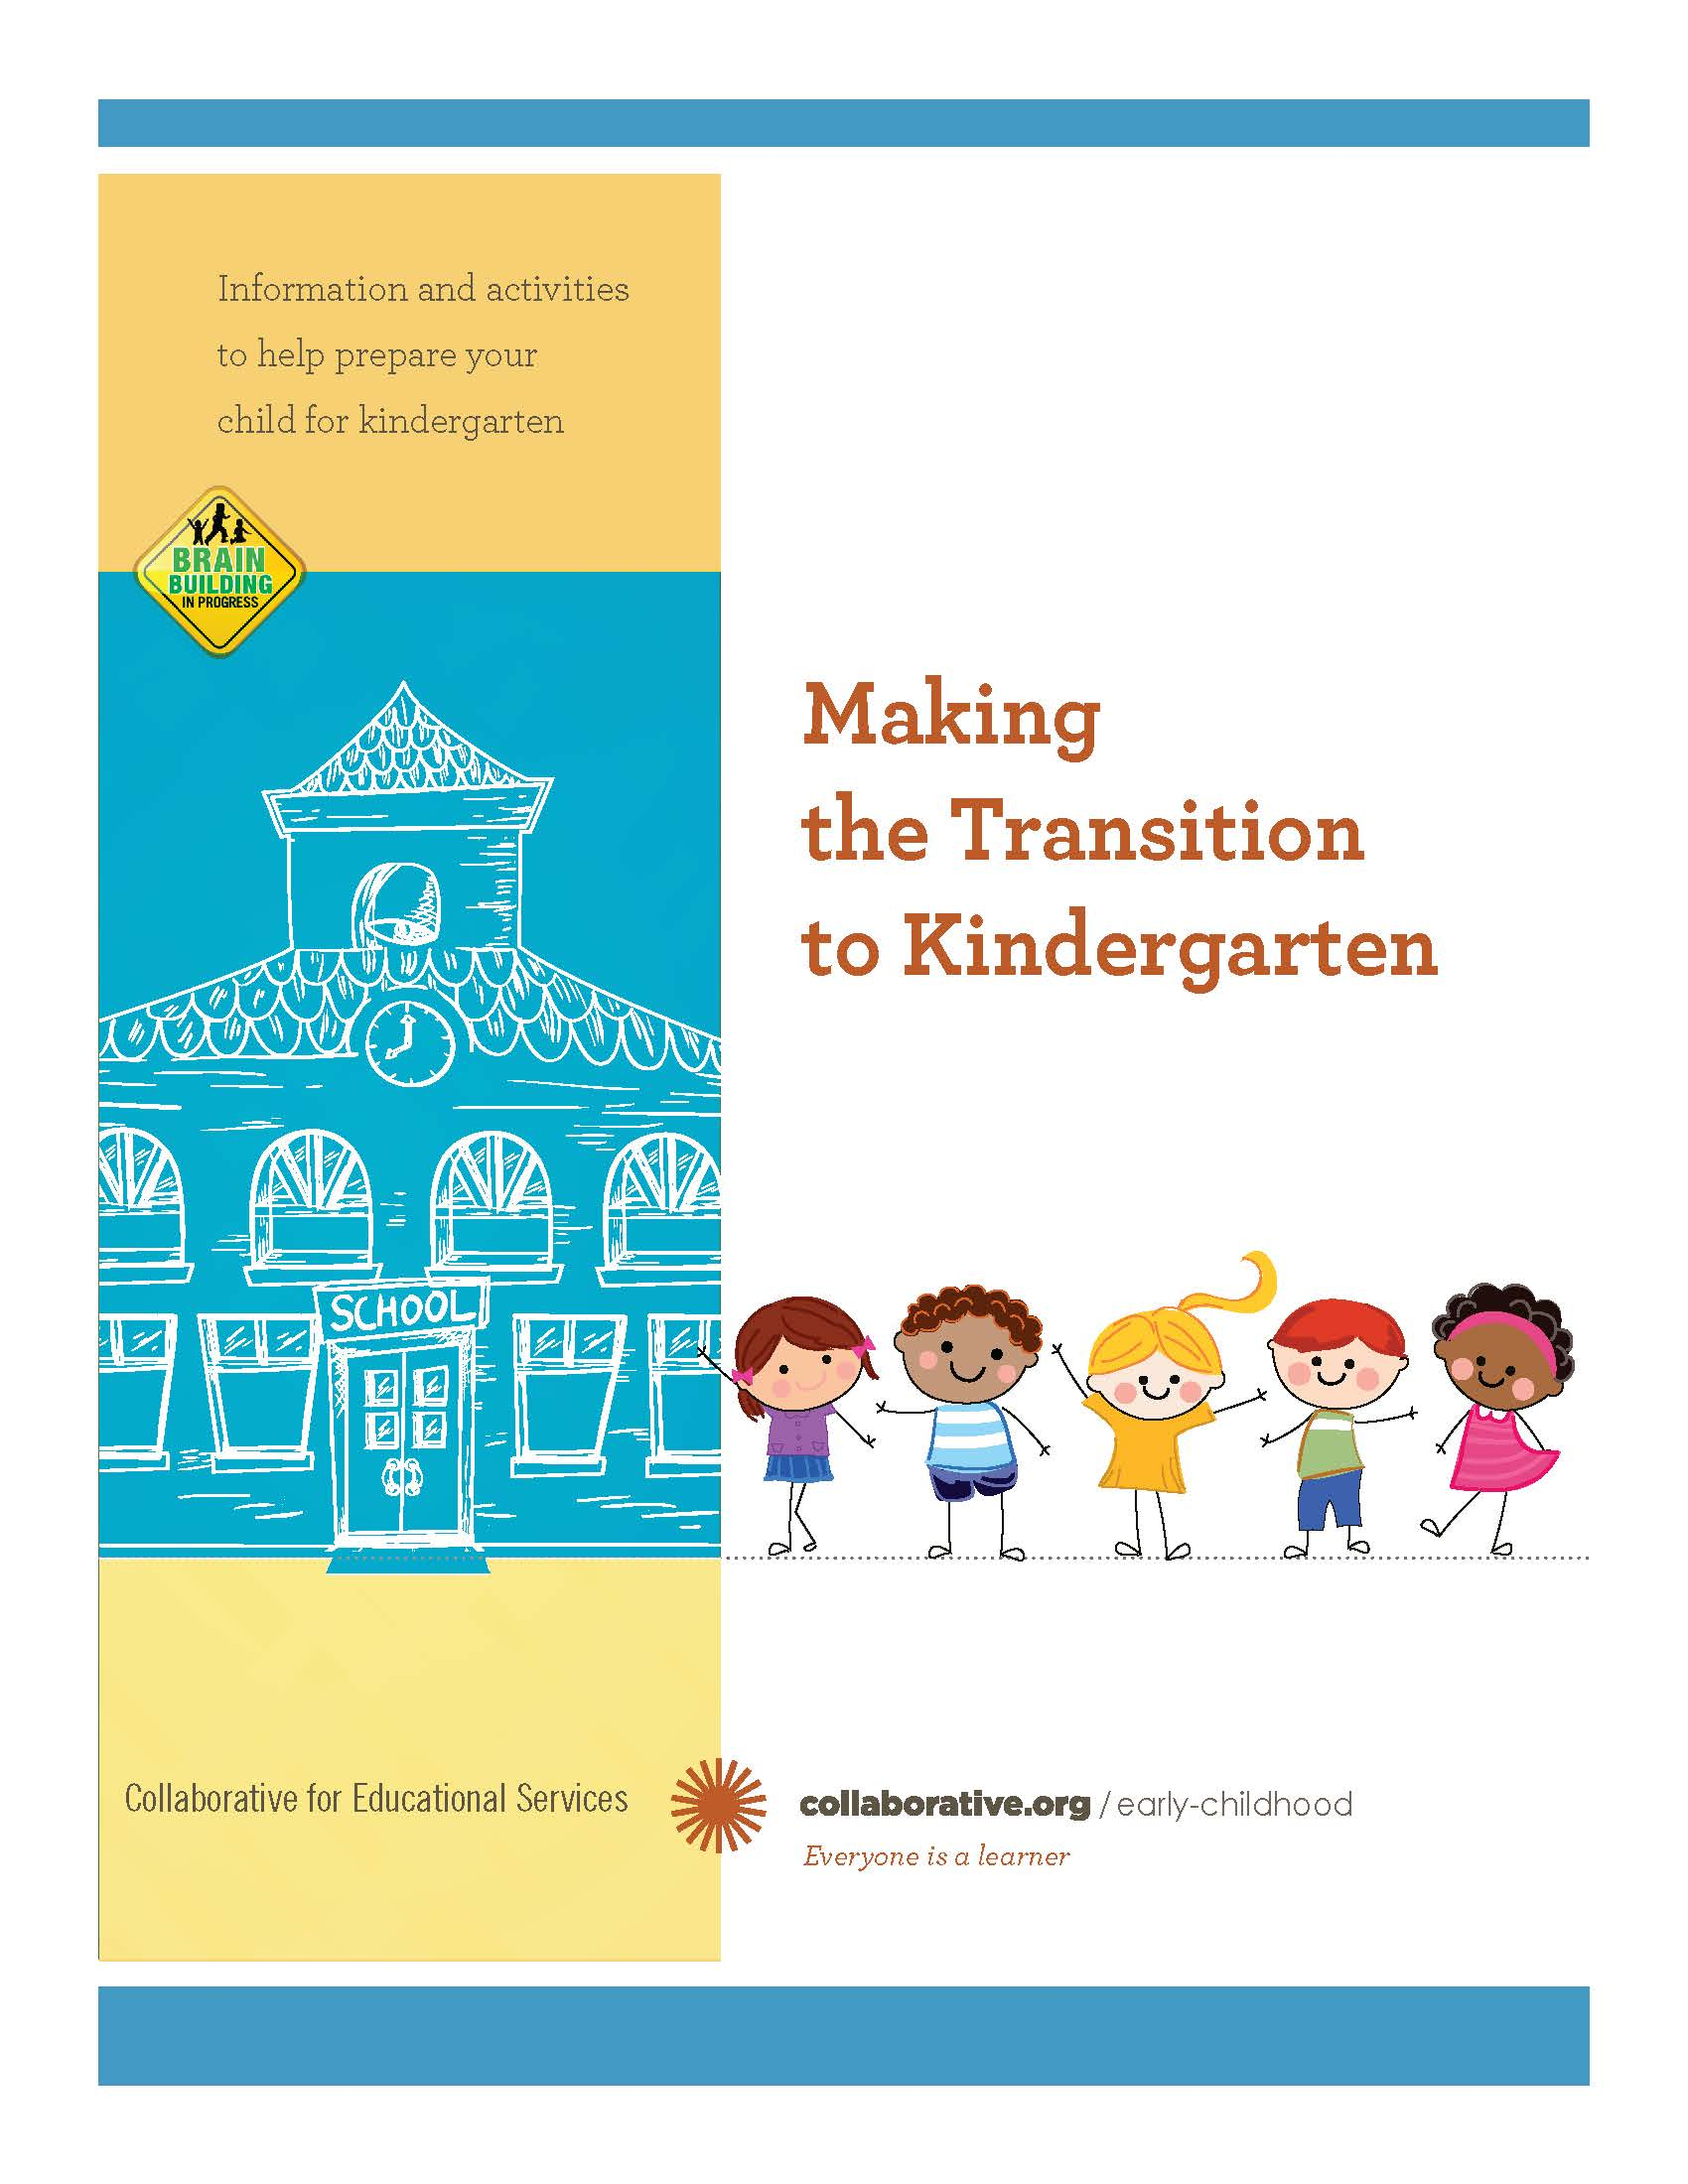 Making the Transition to Kindergarten